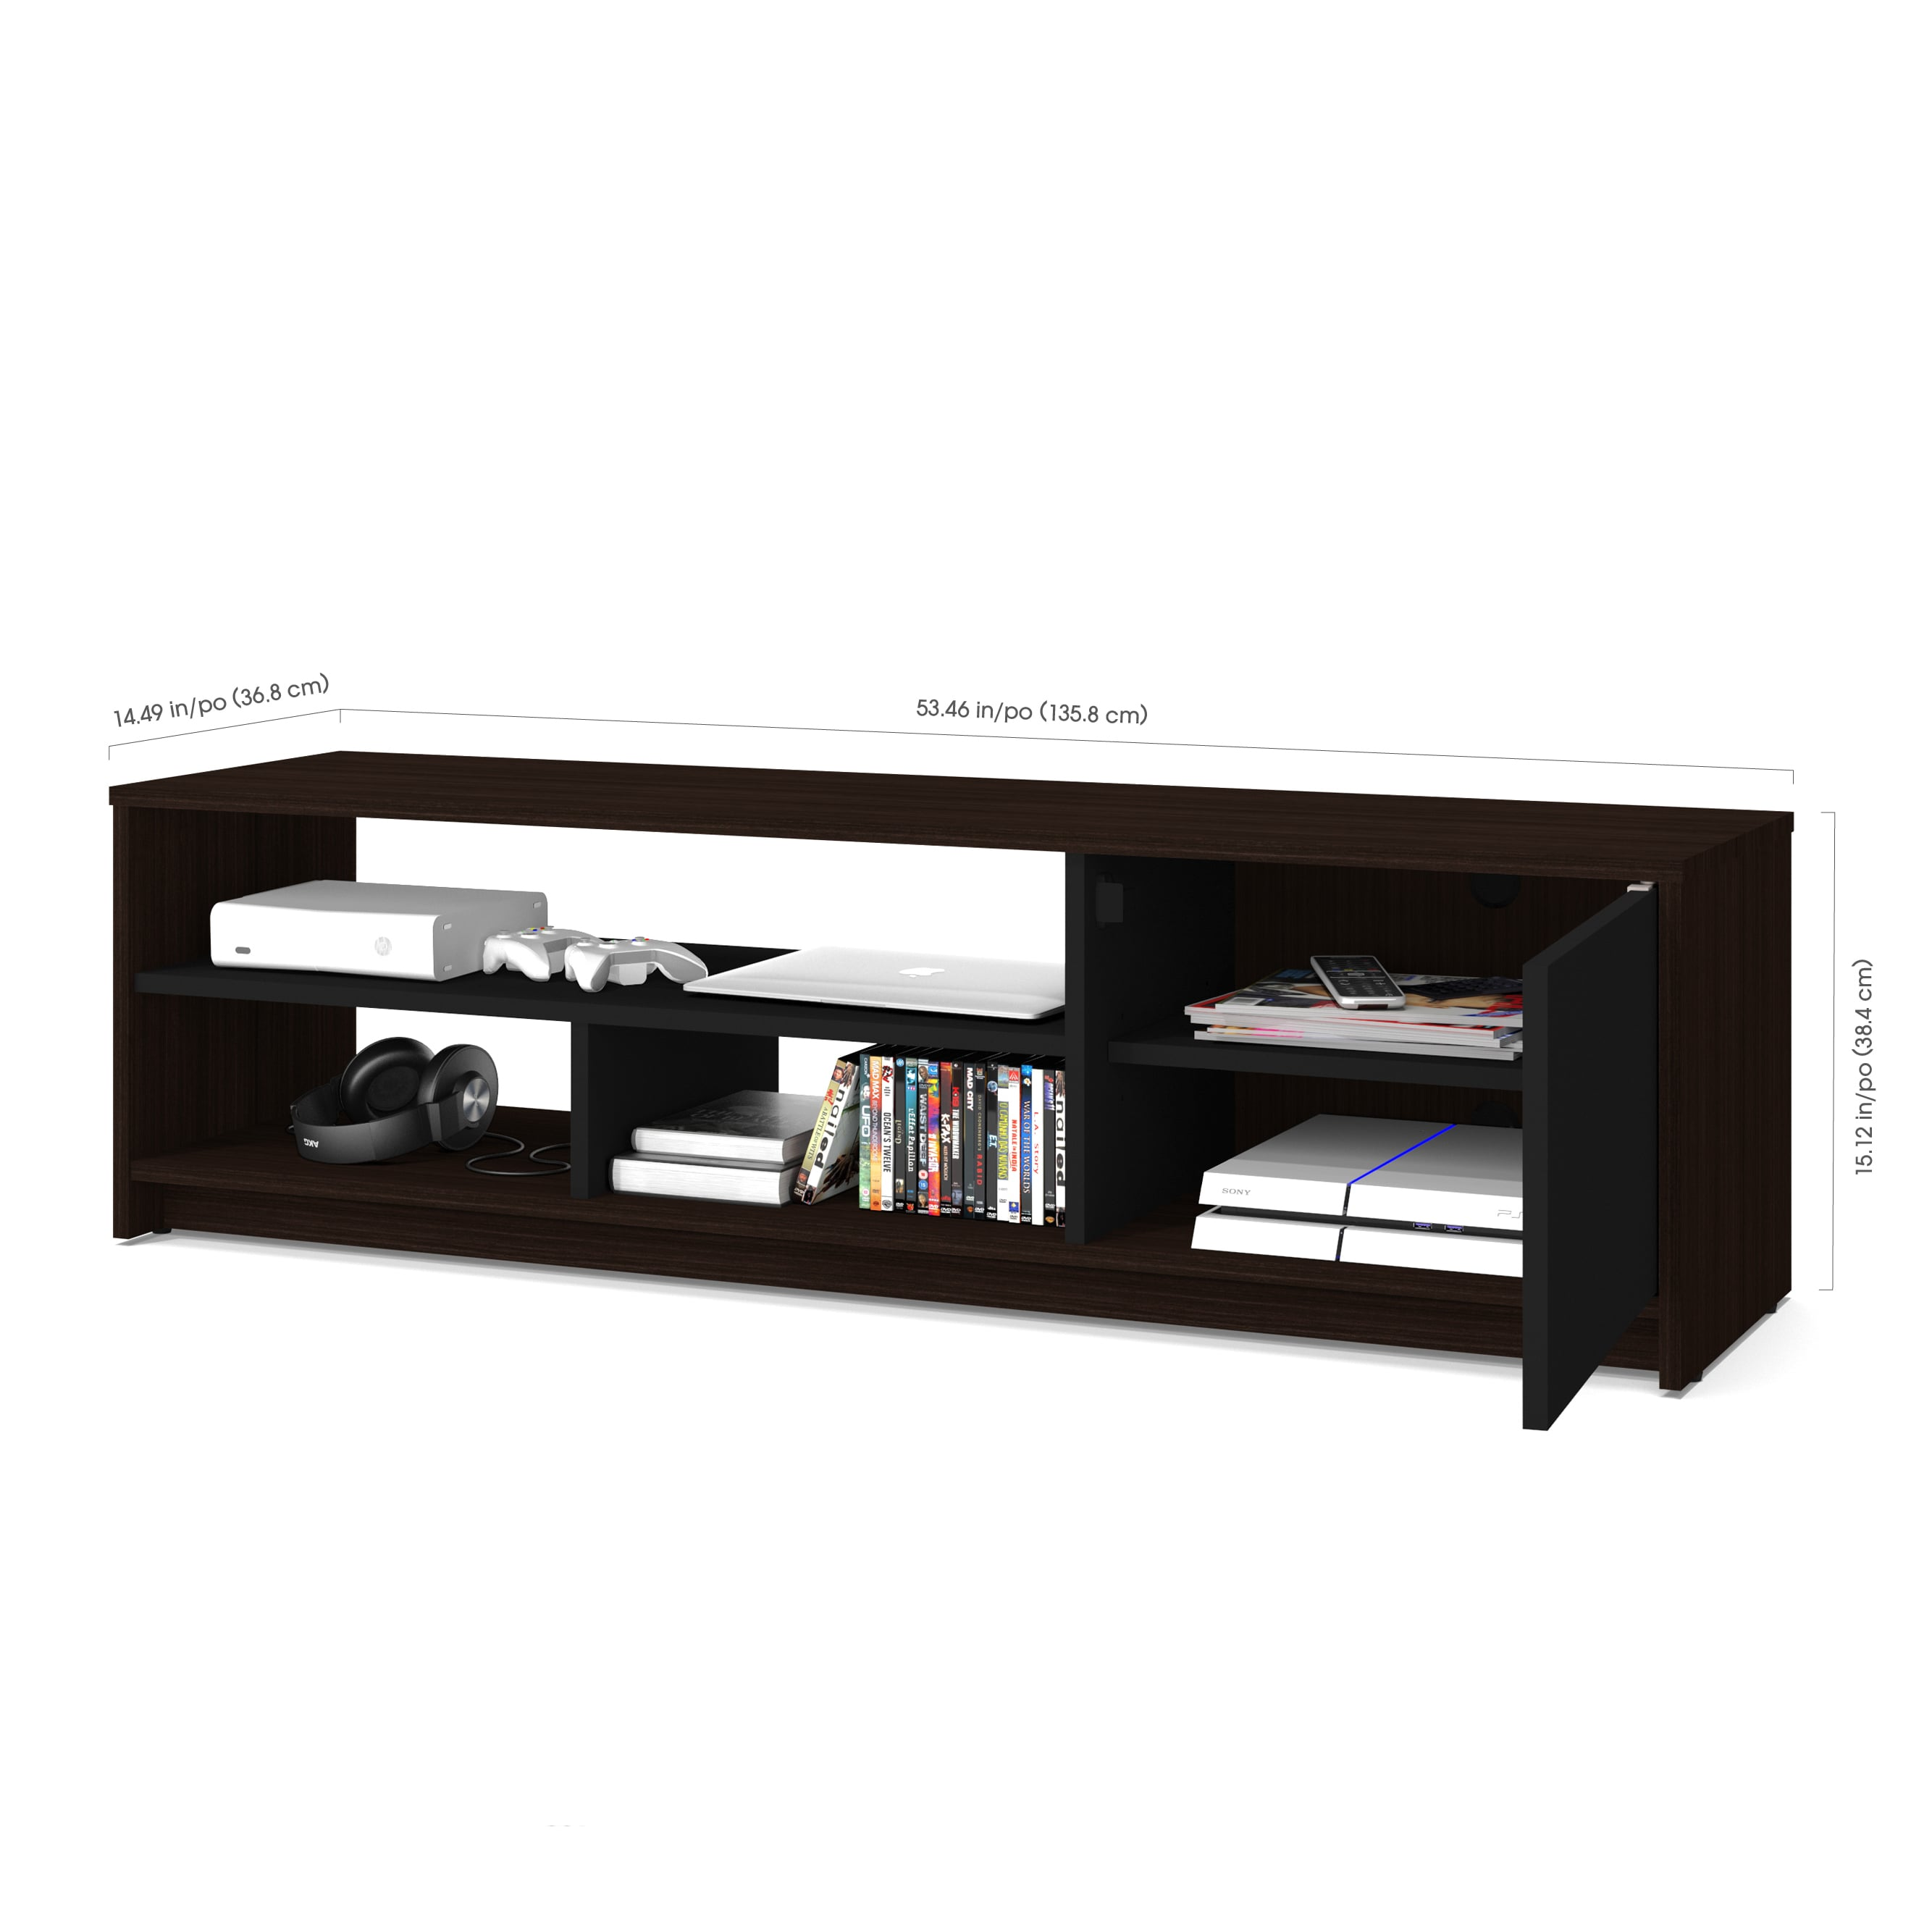 Bestar Small Space 2 Piece Lift Top Storage Coffee Table and TV Stand Set b907606d 2cde 4451 baa2 a1ba418ab1f2 Top Result 50 Luxury Black and White Coffee Table Image 2017 Shdy7